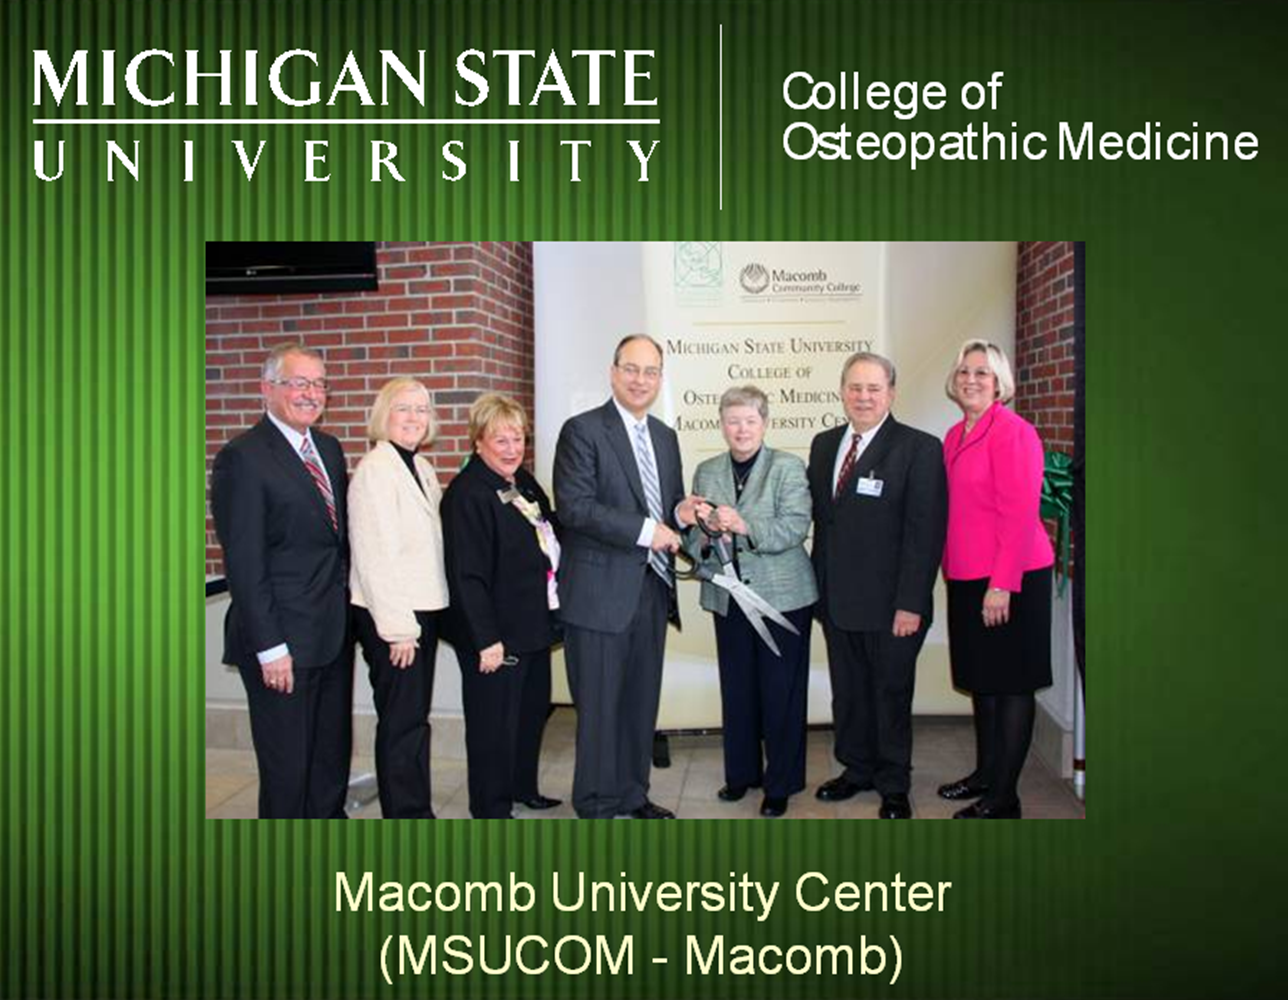 Macomb is first U.S. community college to share a campus with medical school